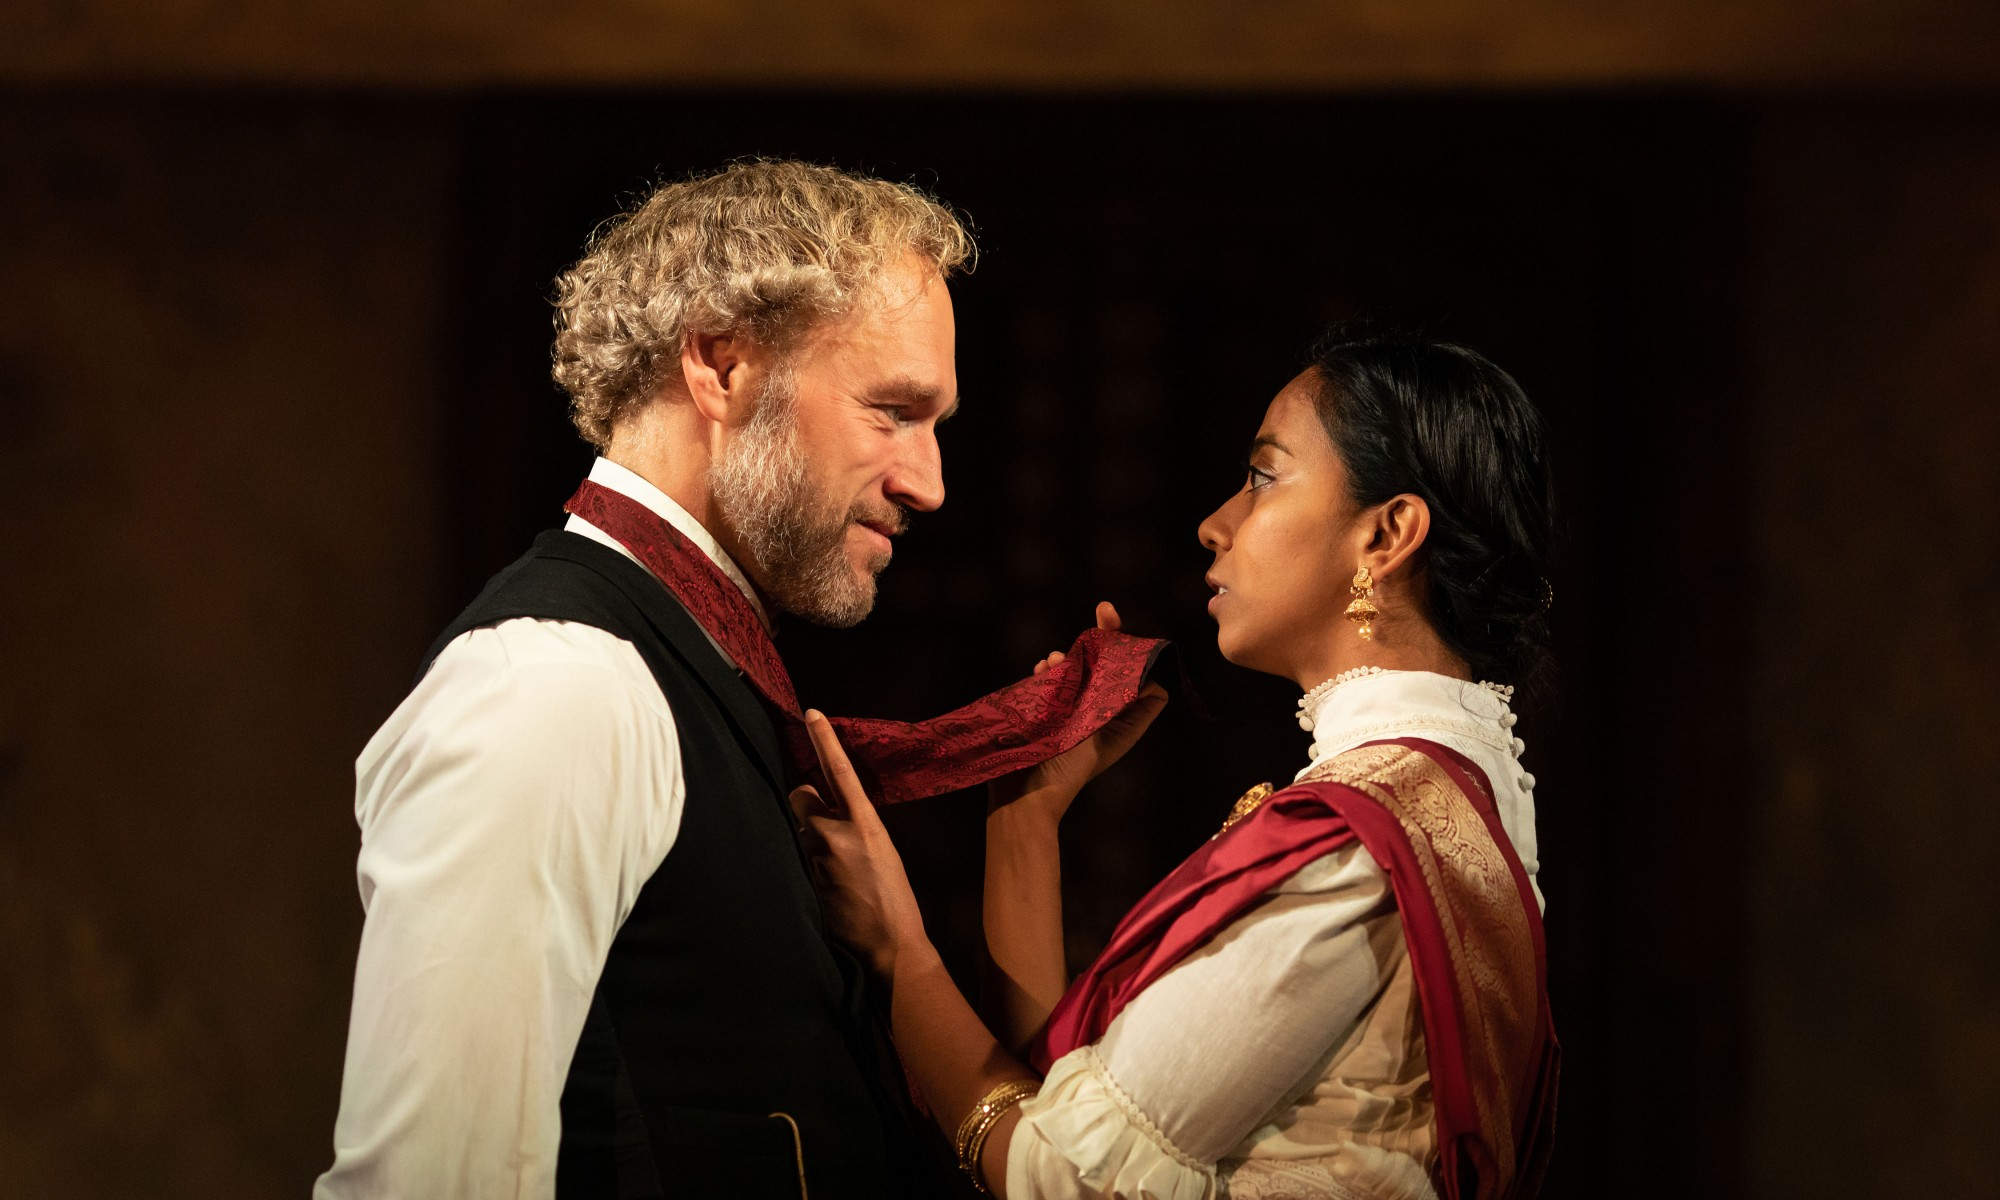 A suited man stares at a women, in Indian dress, who is holding his red tie.